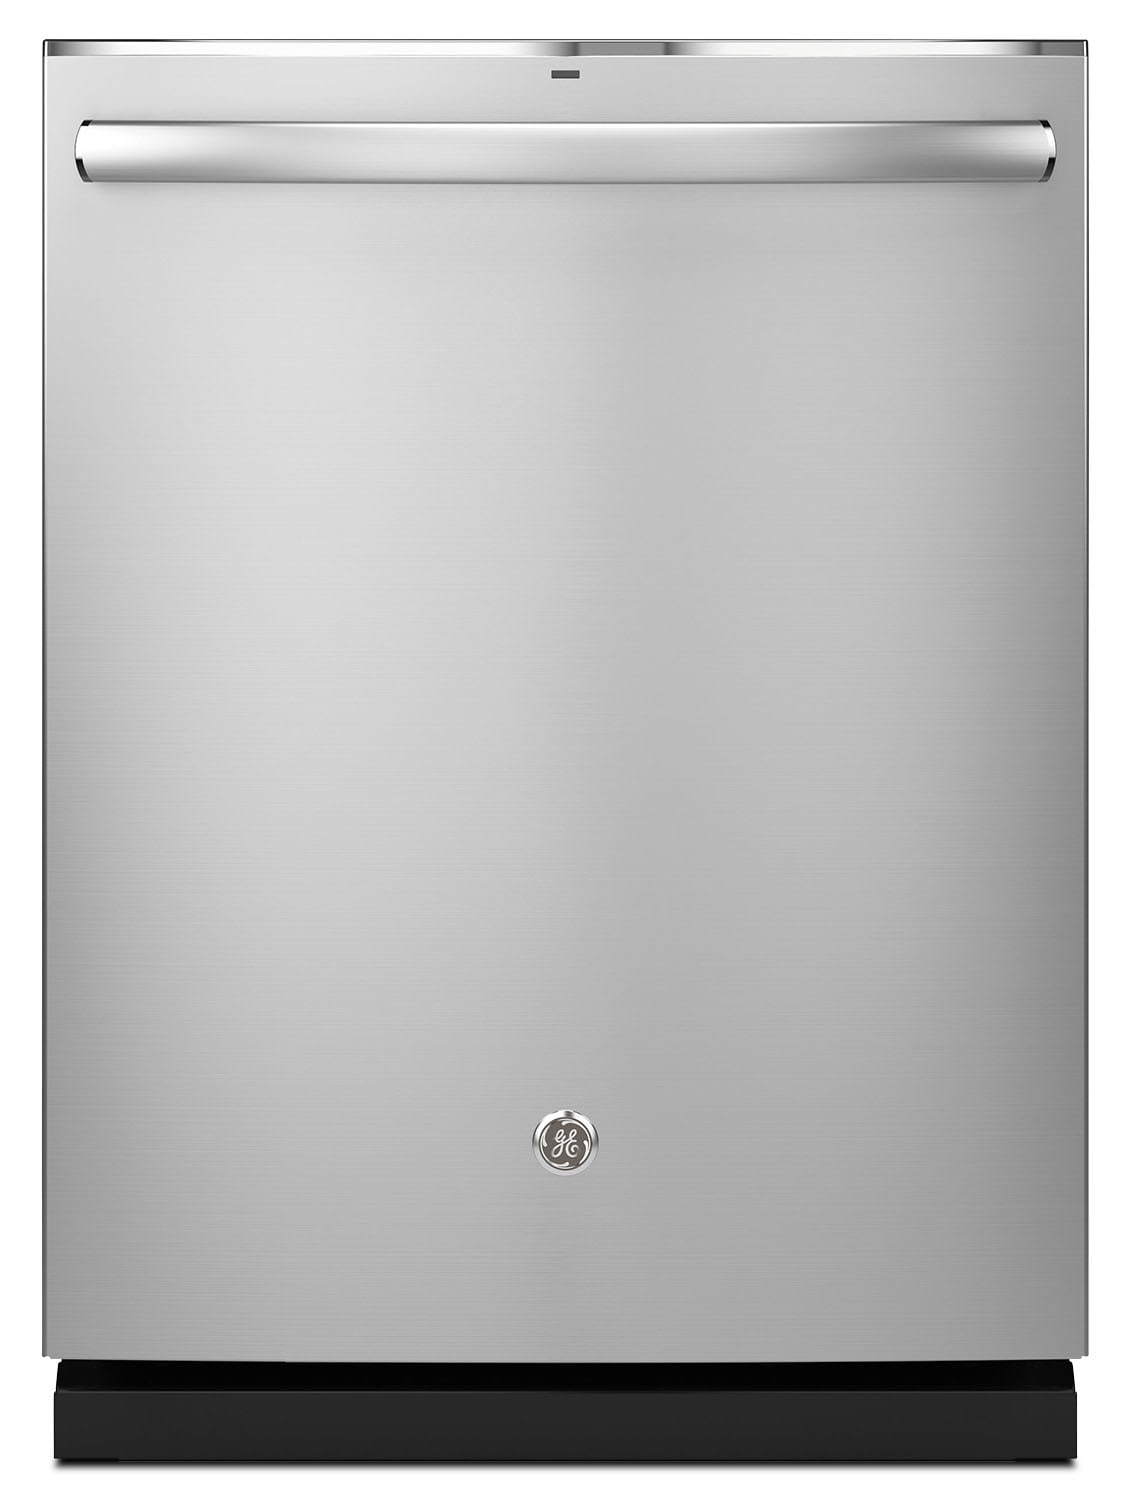 GE Tall-Tub Built-In Dishwasher – GDT655SSJSS